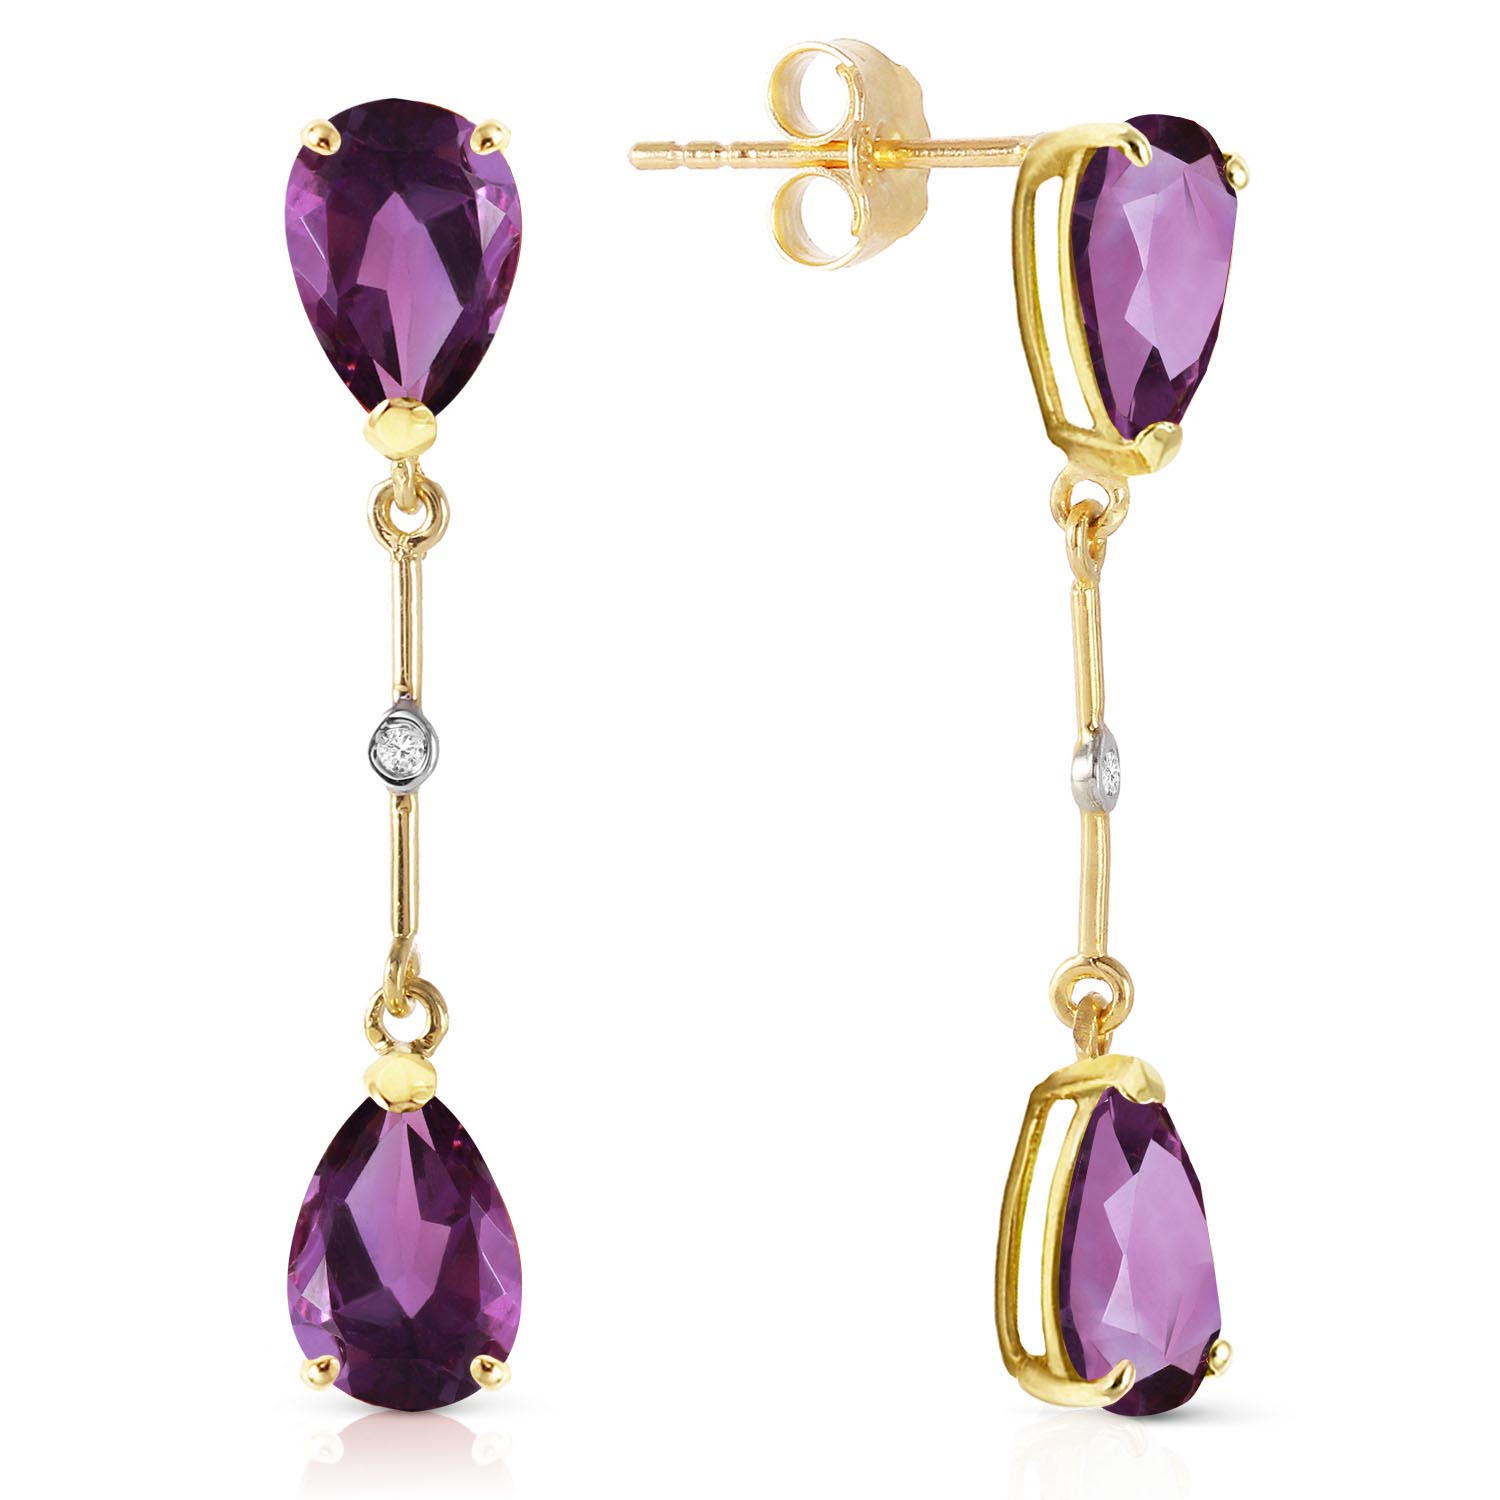 Amethyst and Diamond Drop Earrings 6.0ctw in 9ct Gold